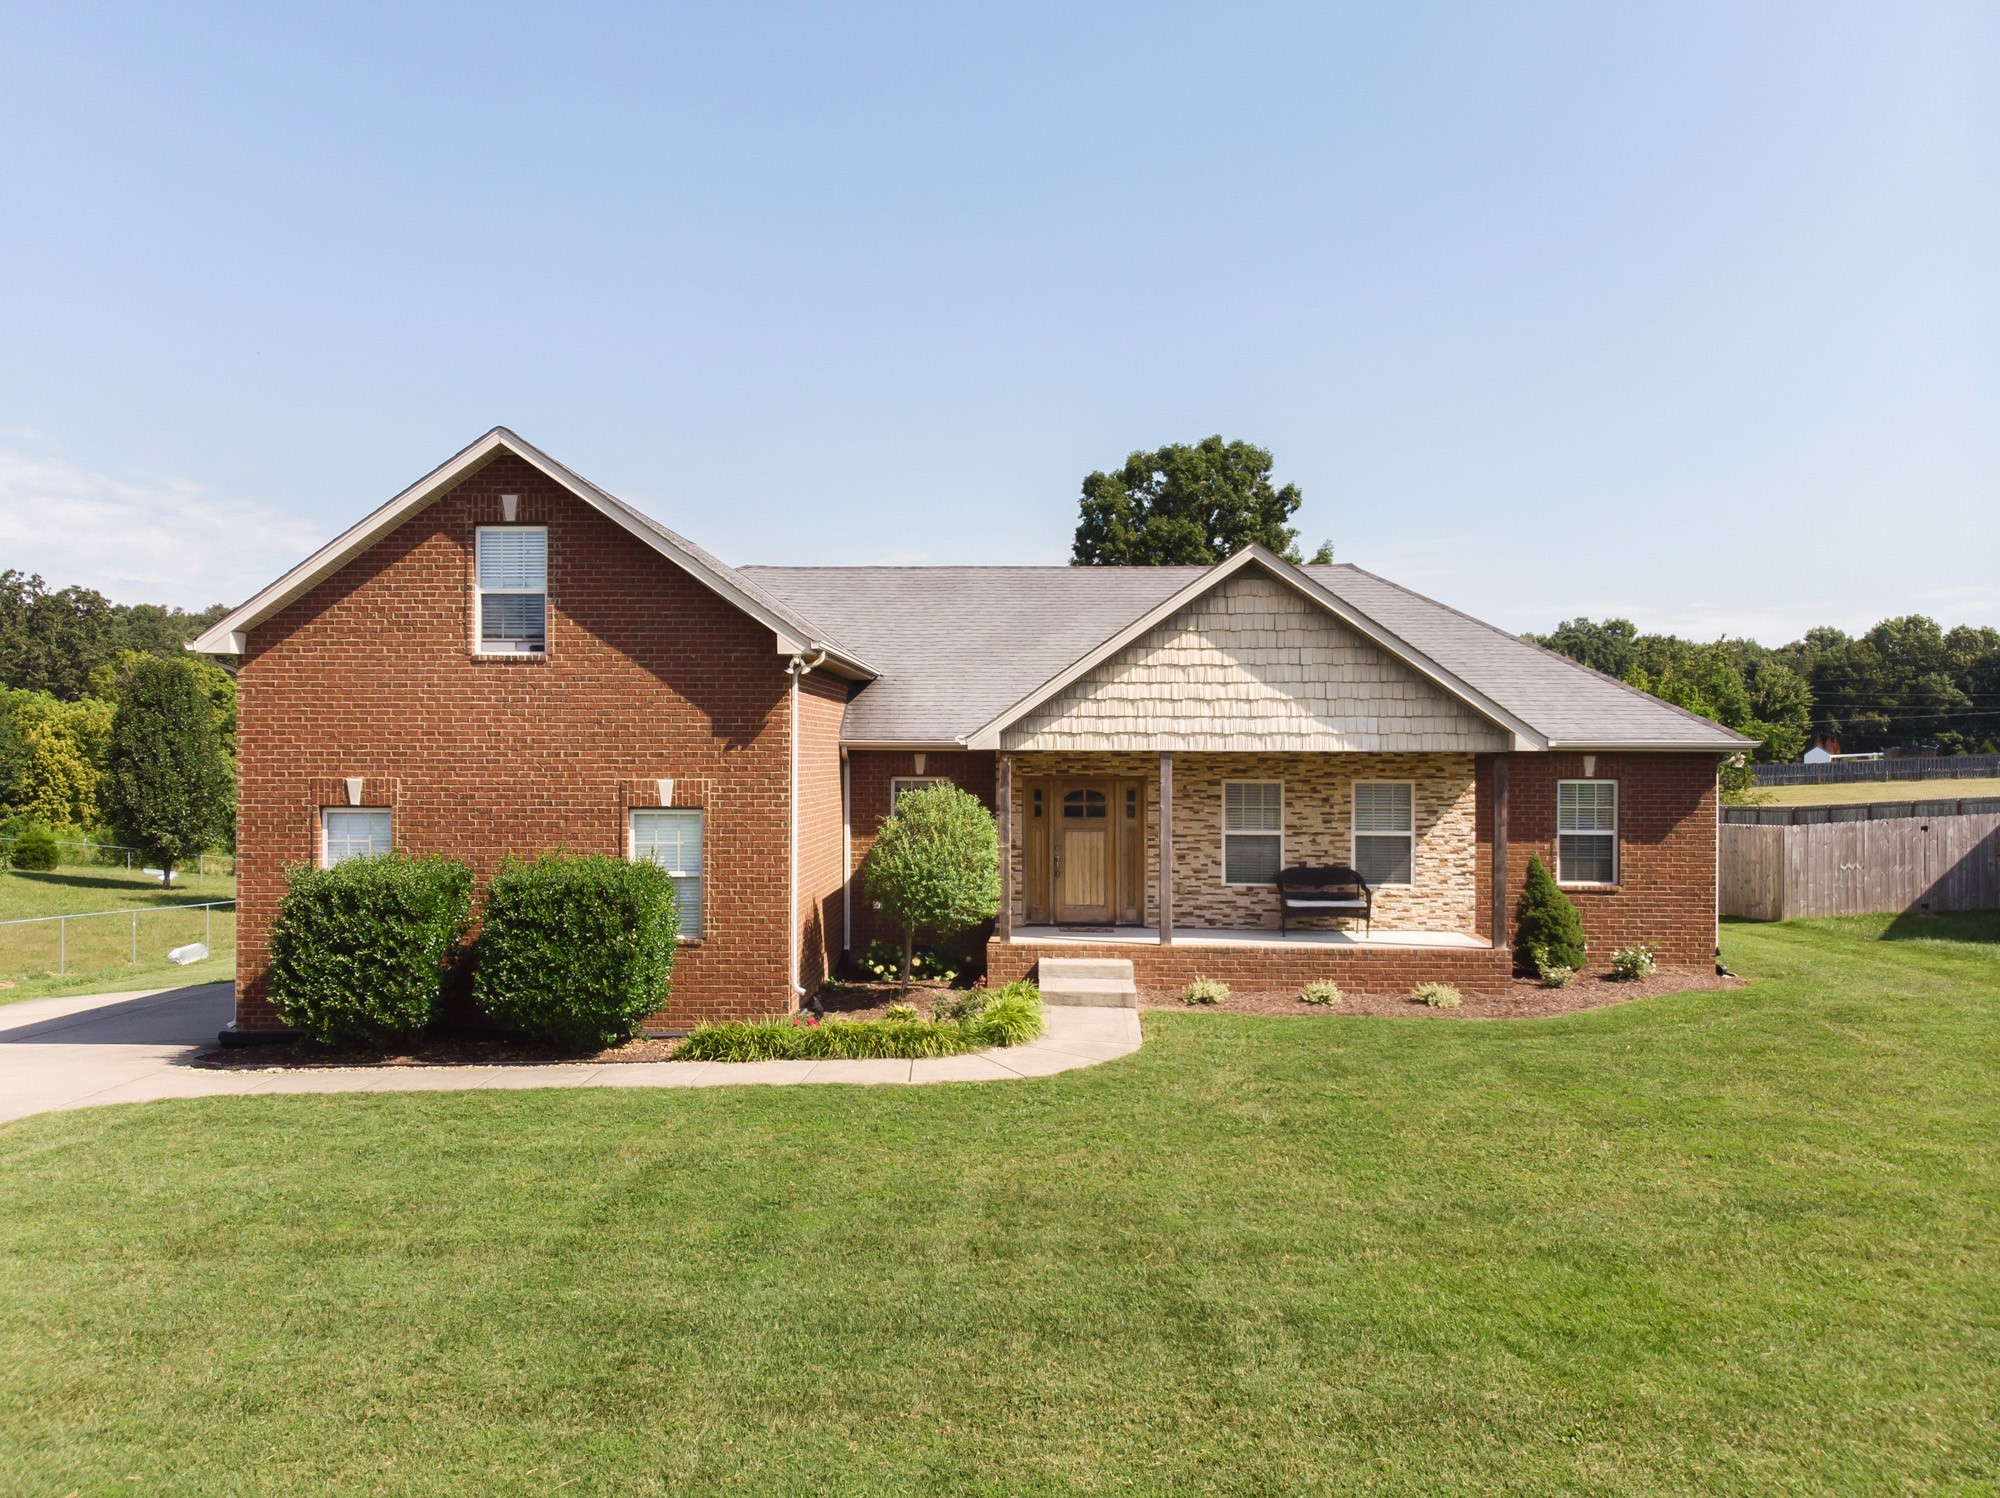 107 Marty Ln Property Photo - White Bluff, TN real estate listing